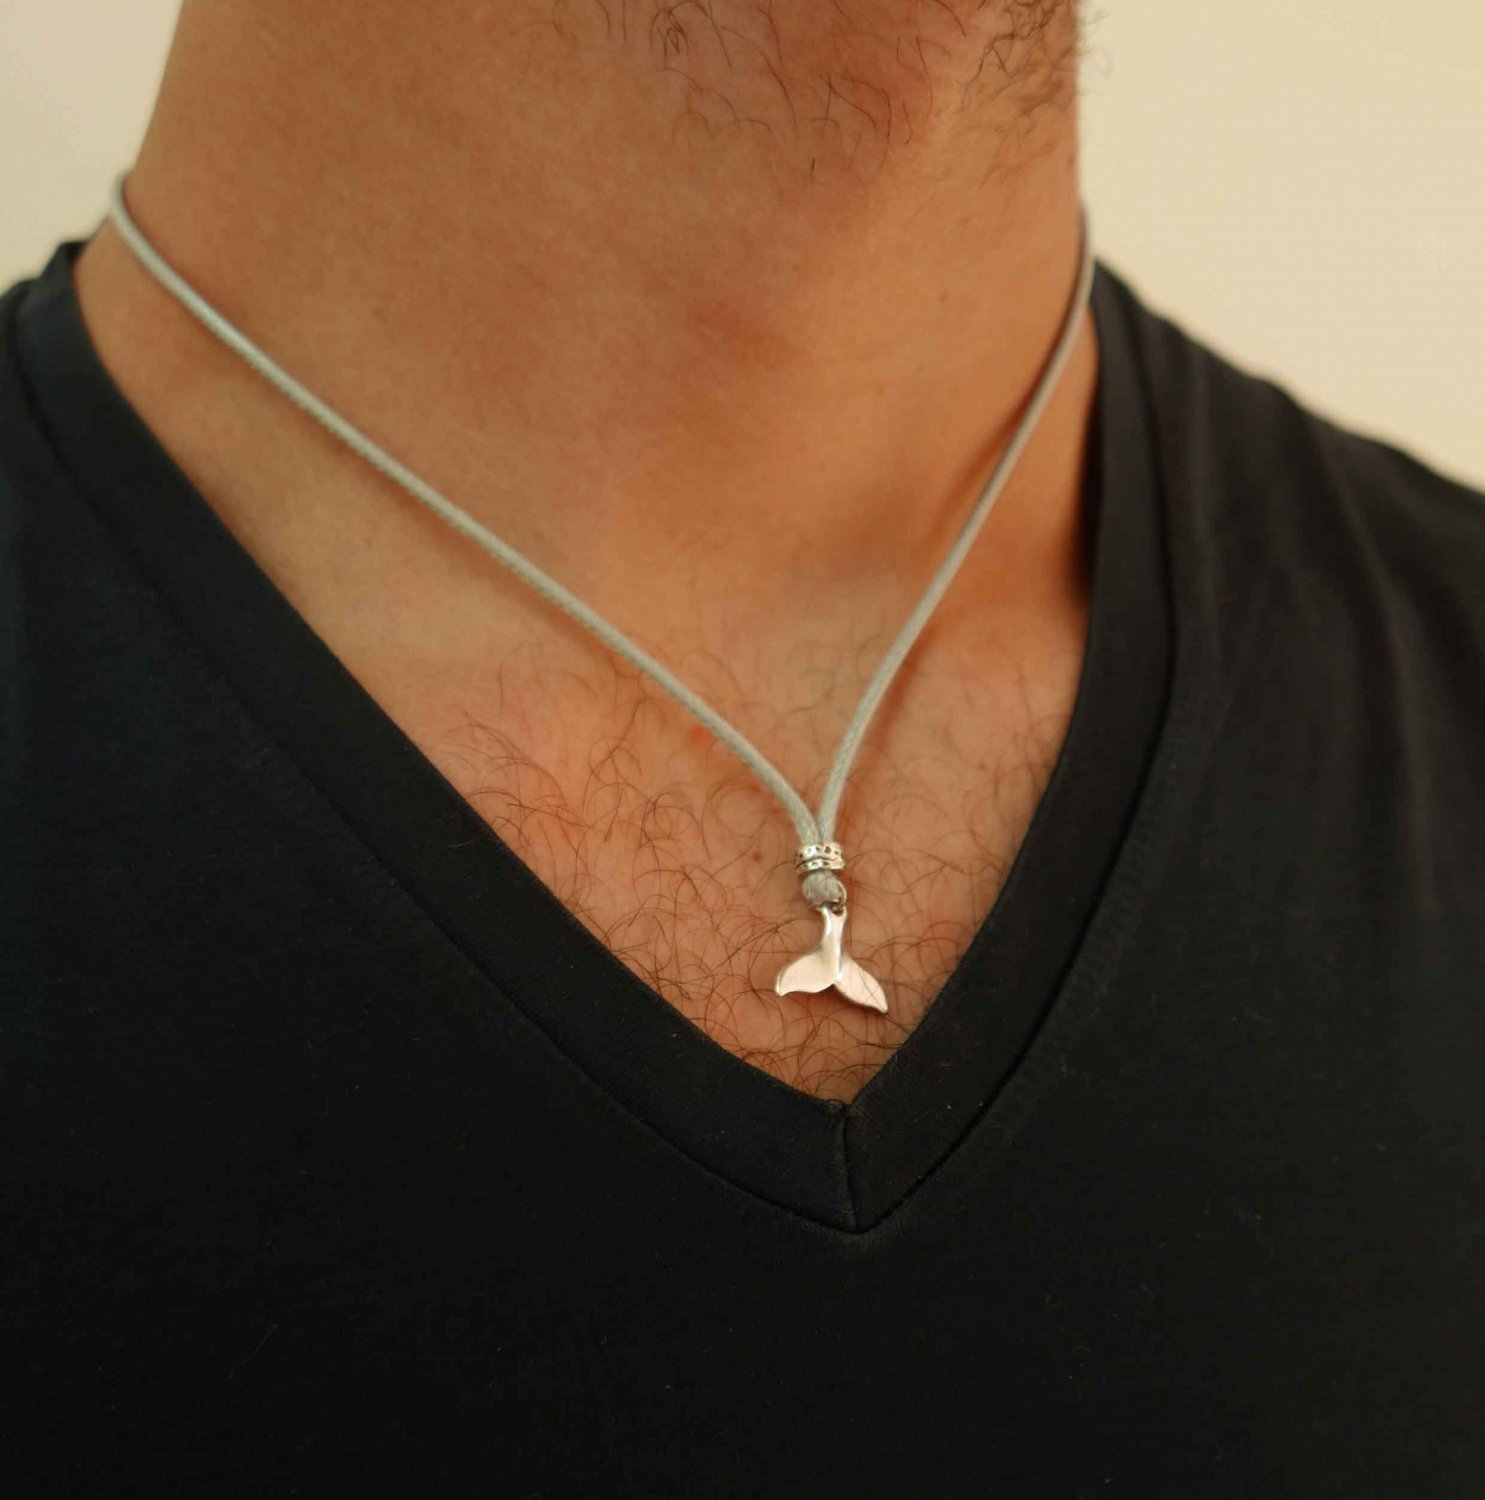 Men's Necklace - Men's Jewelry - Gift For Him - Husband Gift - Boyfriend Gift